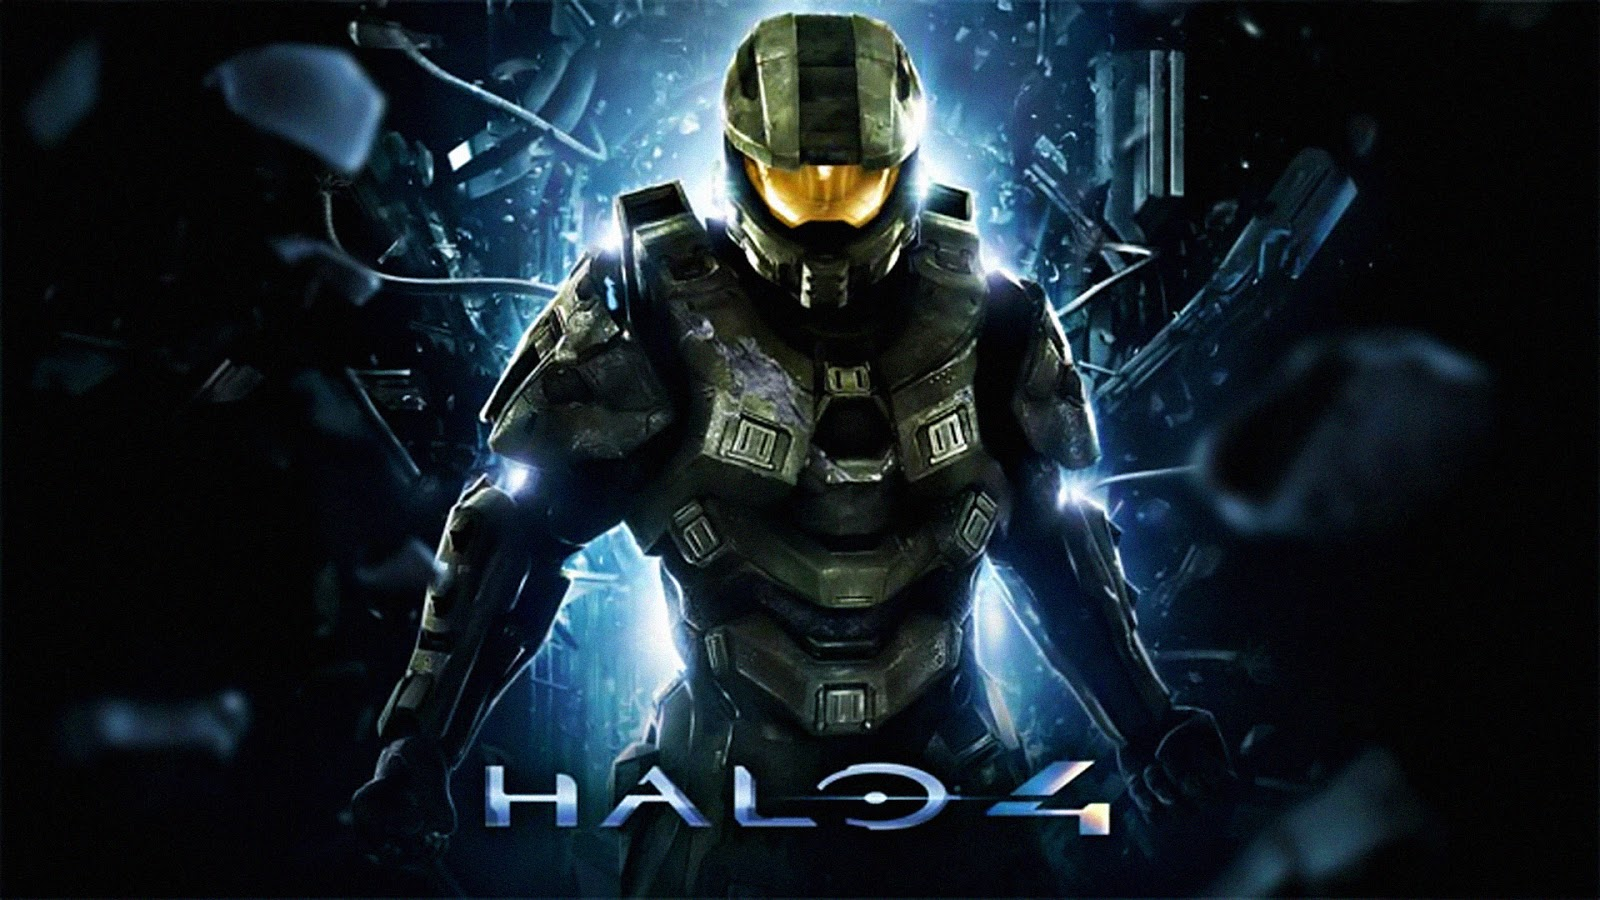 halo 4 wallpapers 1600x900